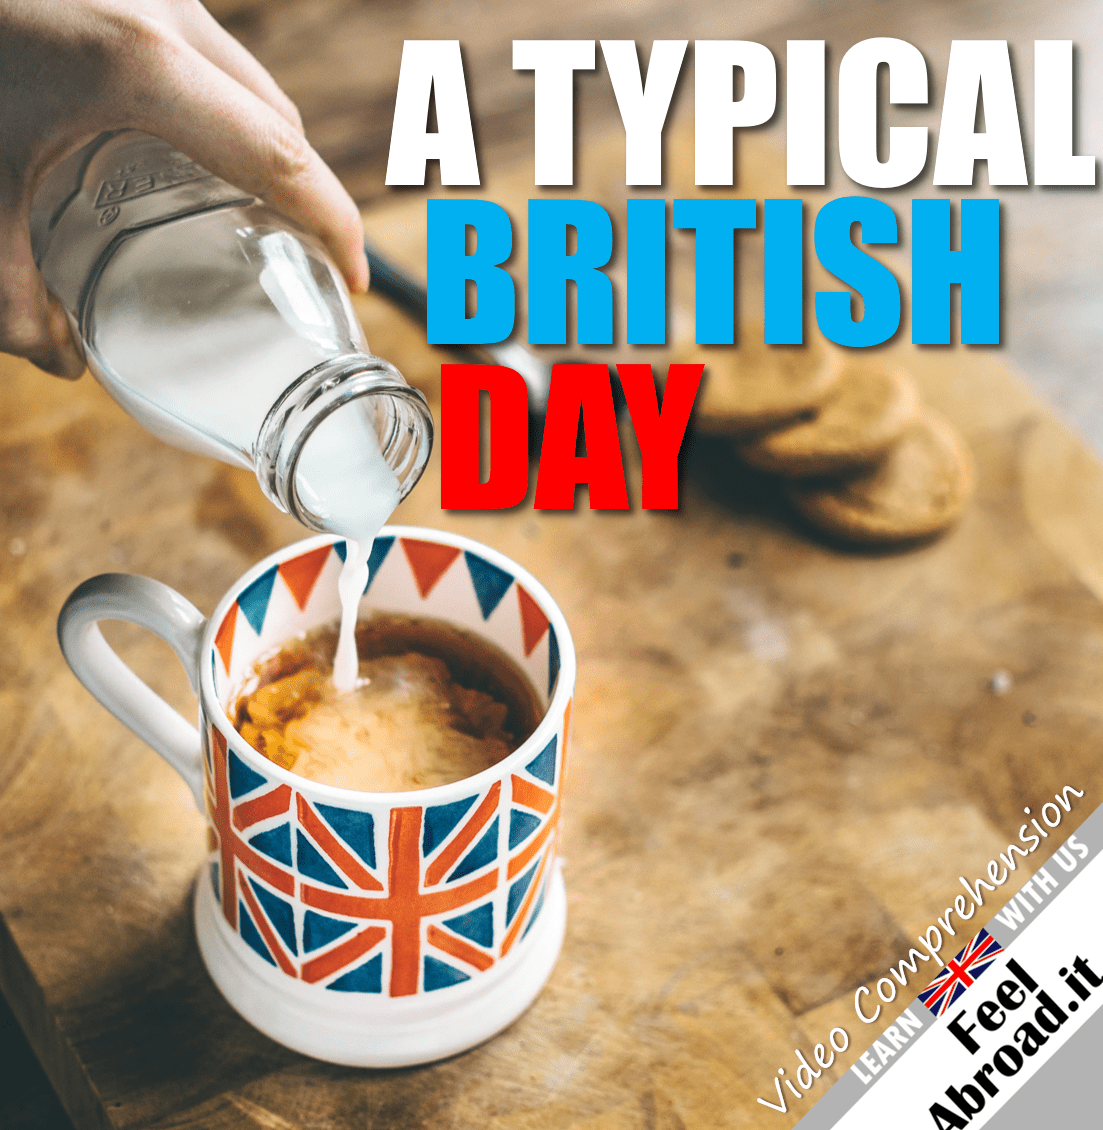 A Typical British Day